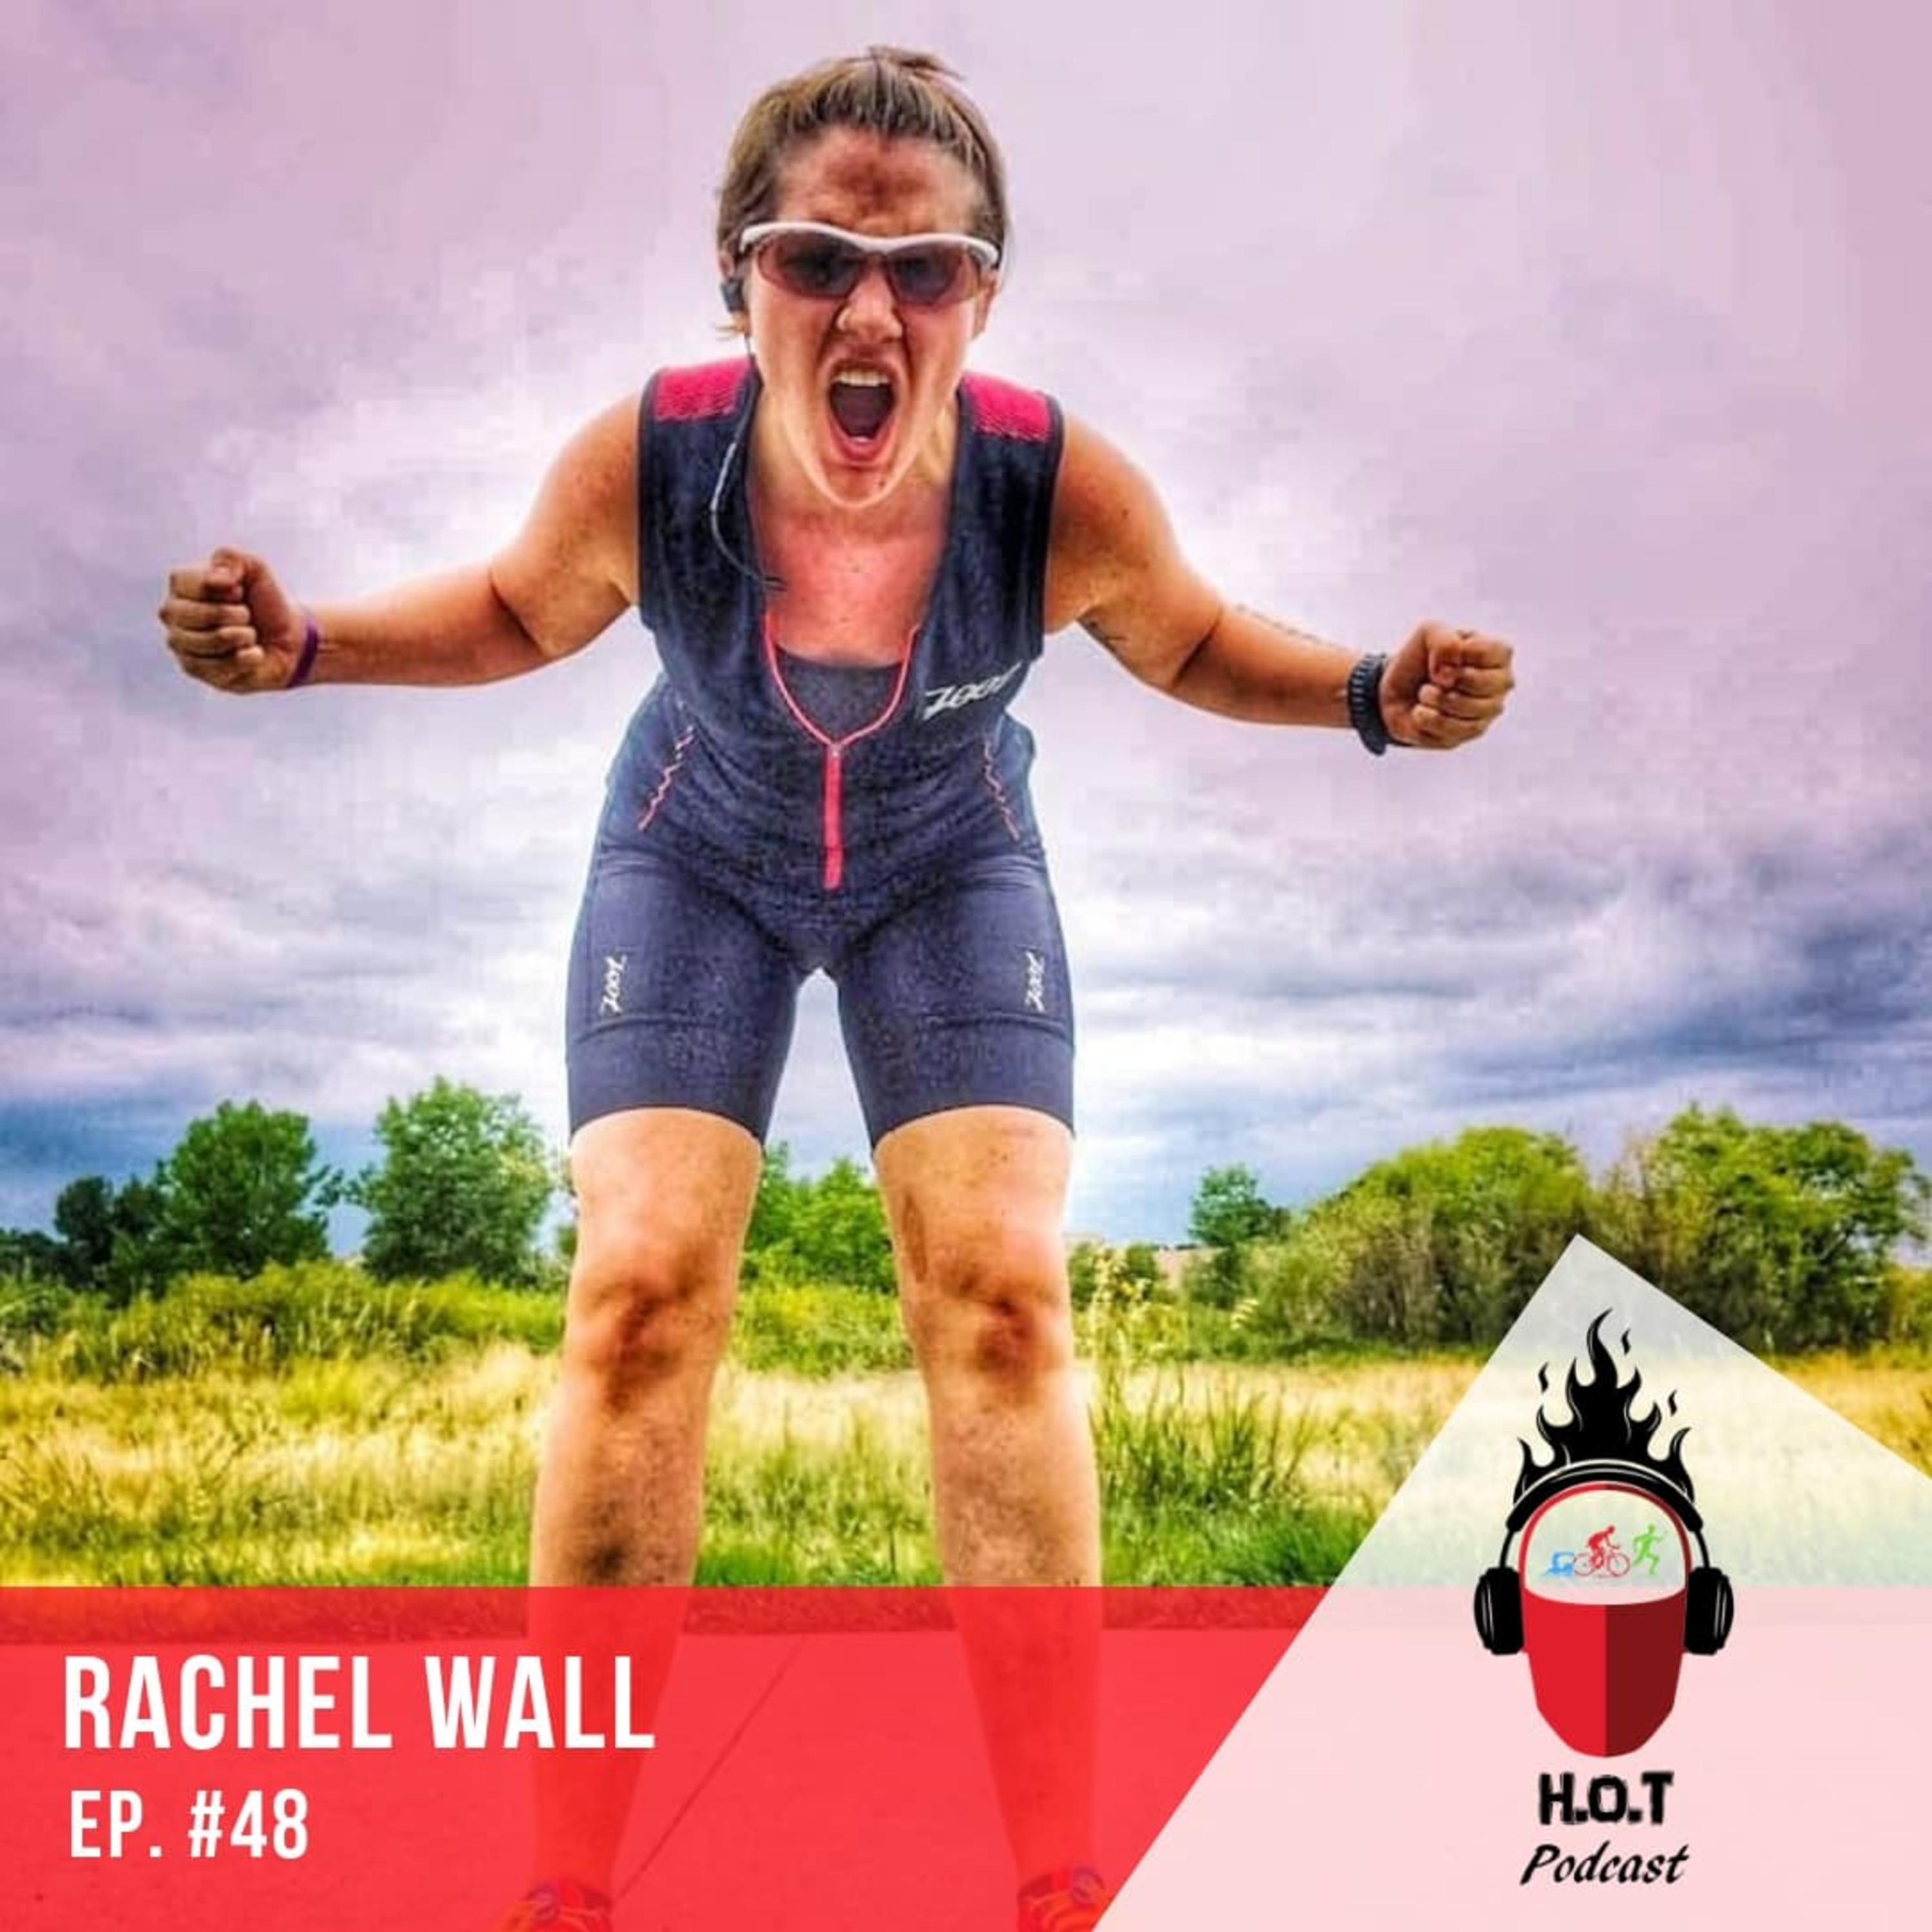 Ep. #48: Rachel Wall - A Hereditary Angioedema Warrior's Journey to Becoming Comfortable in Her Own Skin